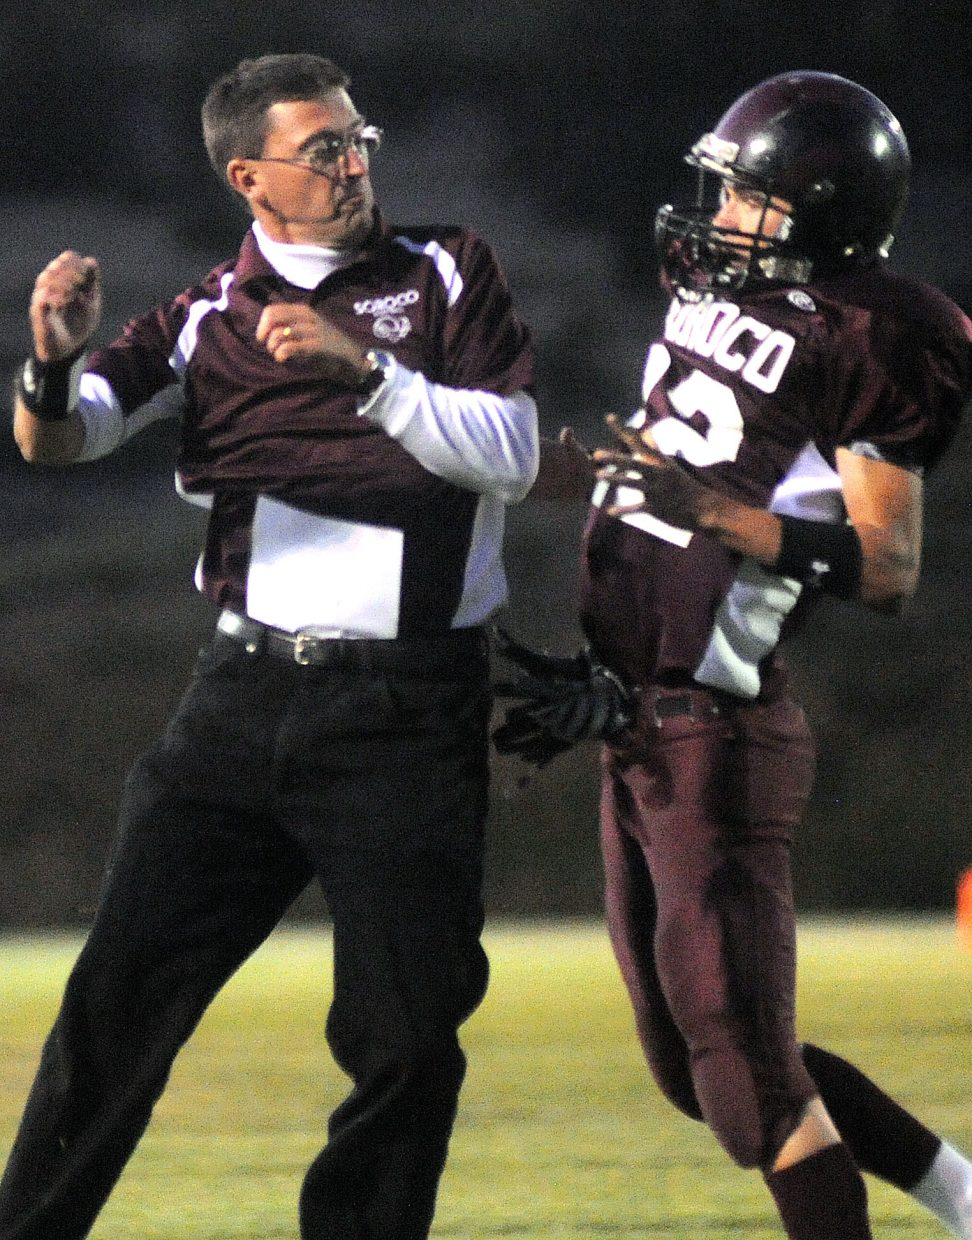 Soroco coach David Bruner and junior quarterback Nic Paxton leap to celebrate Soroco's first touchdown of the season Friday as the Rams rolled over Nucla, 44-18.